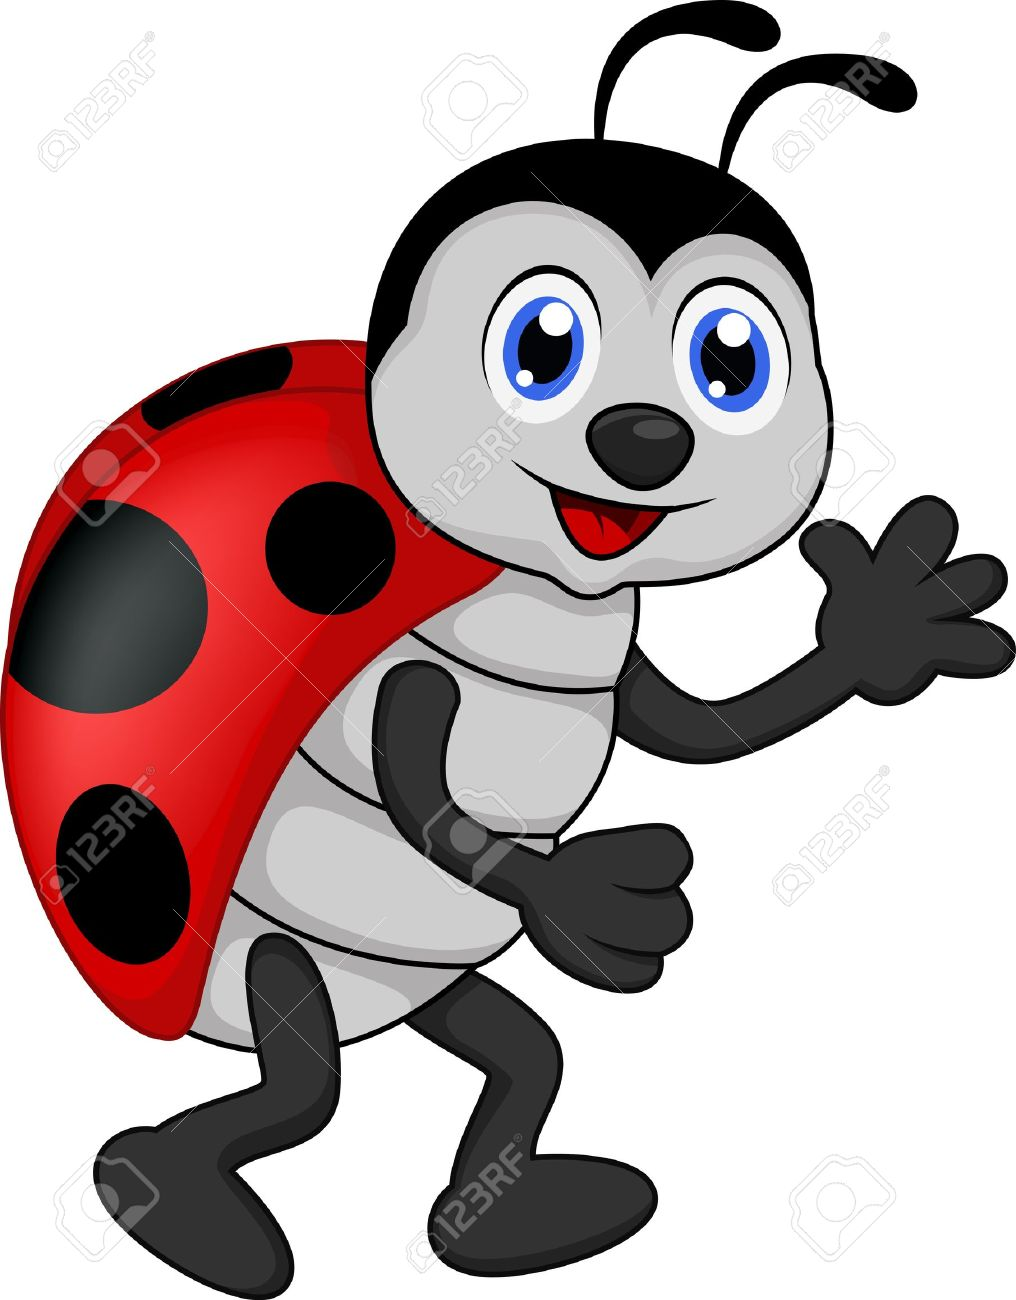 Ladybug clipart kid. Animated free download best